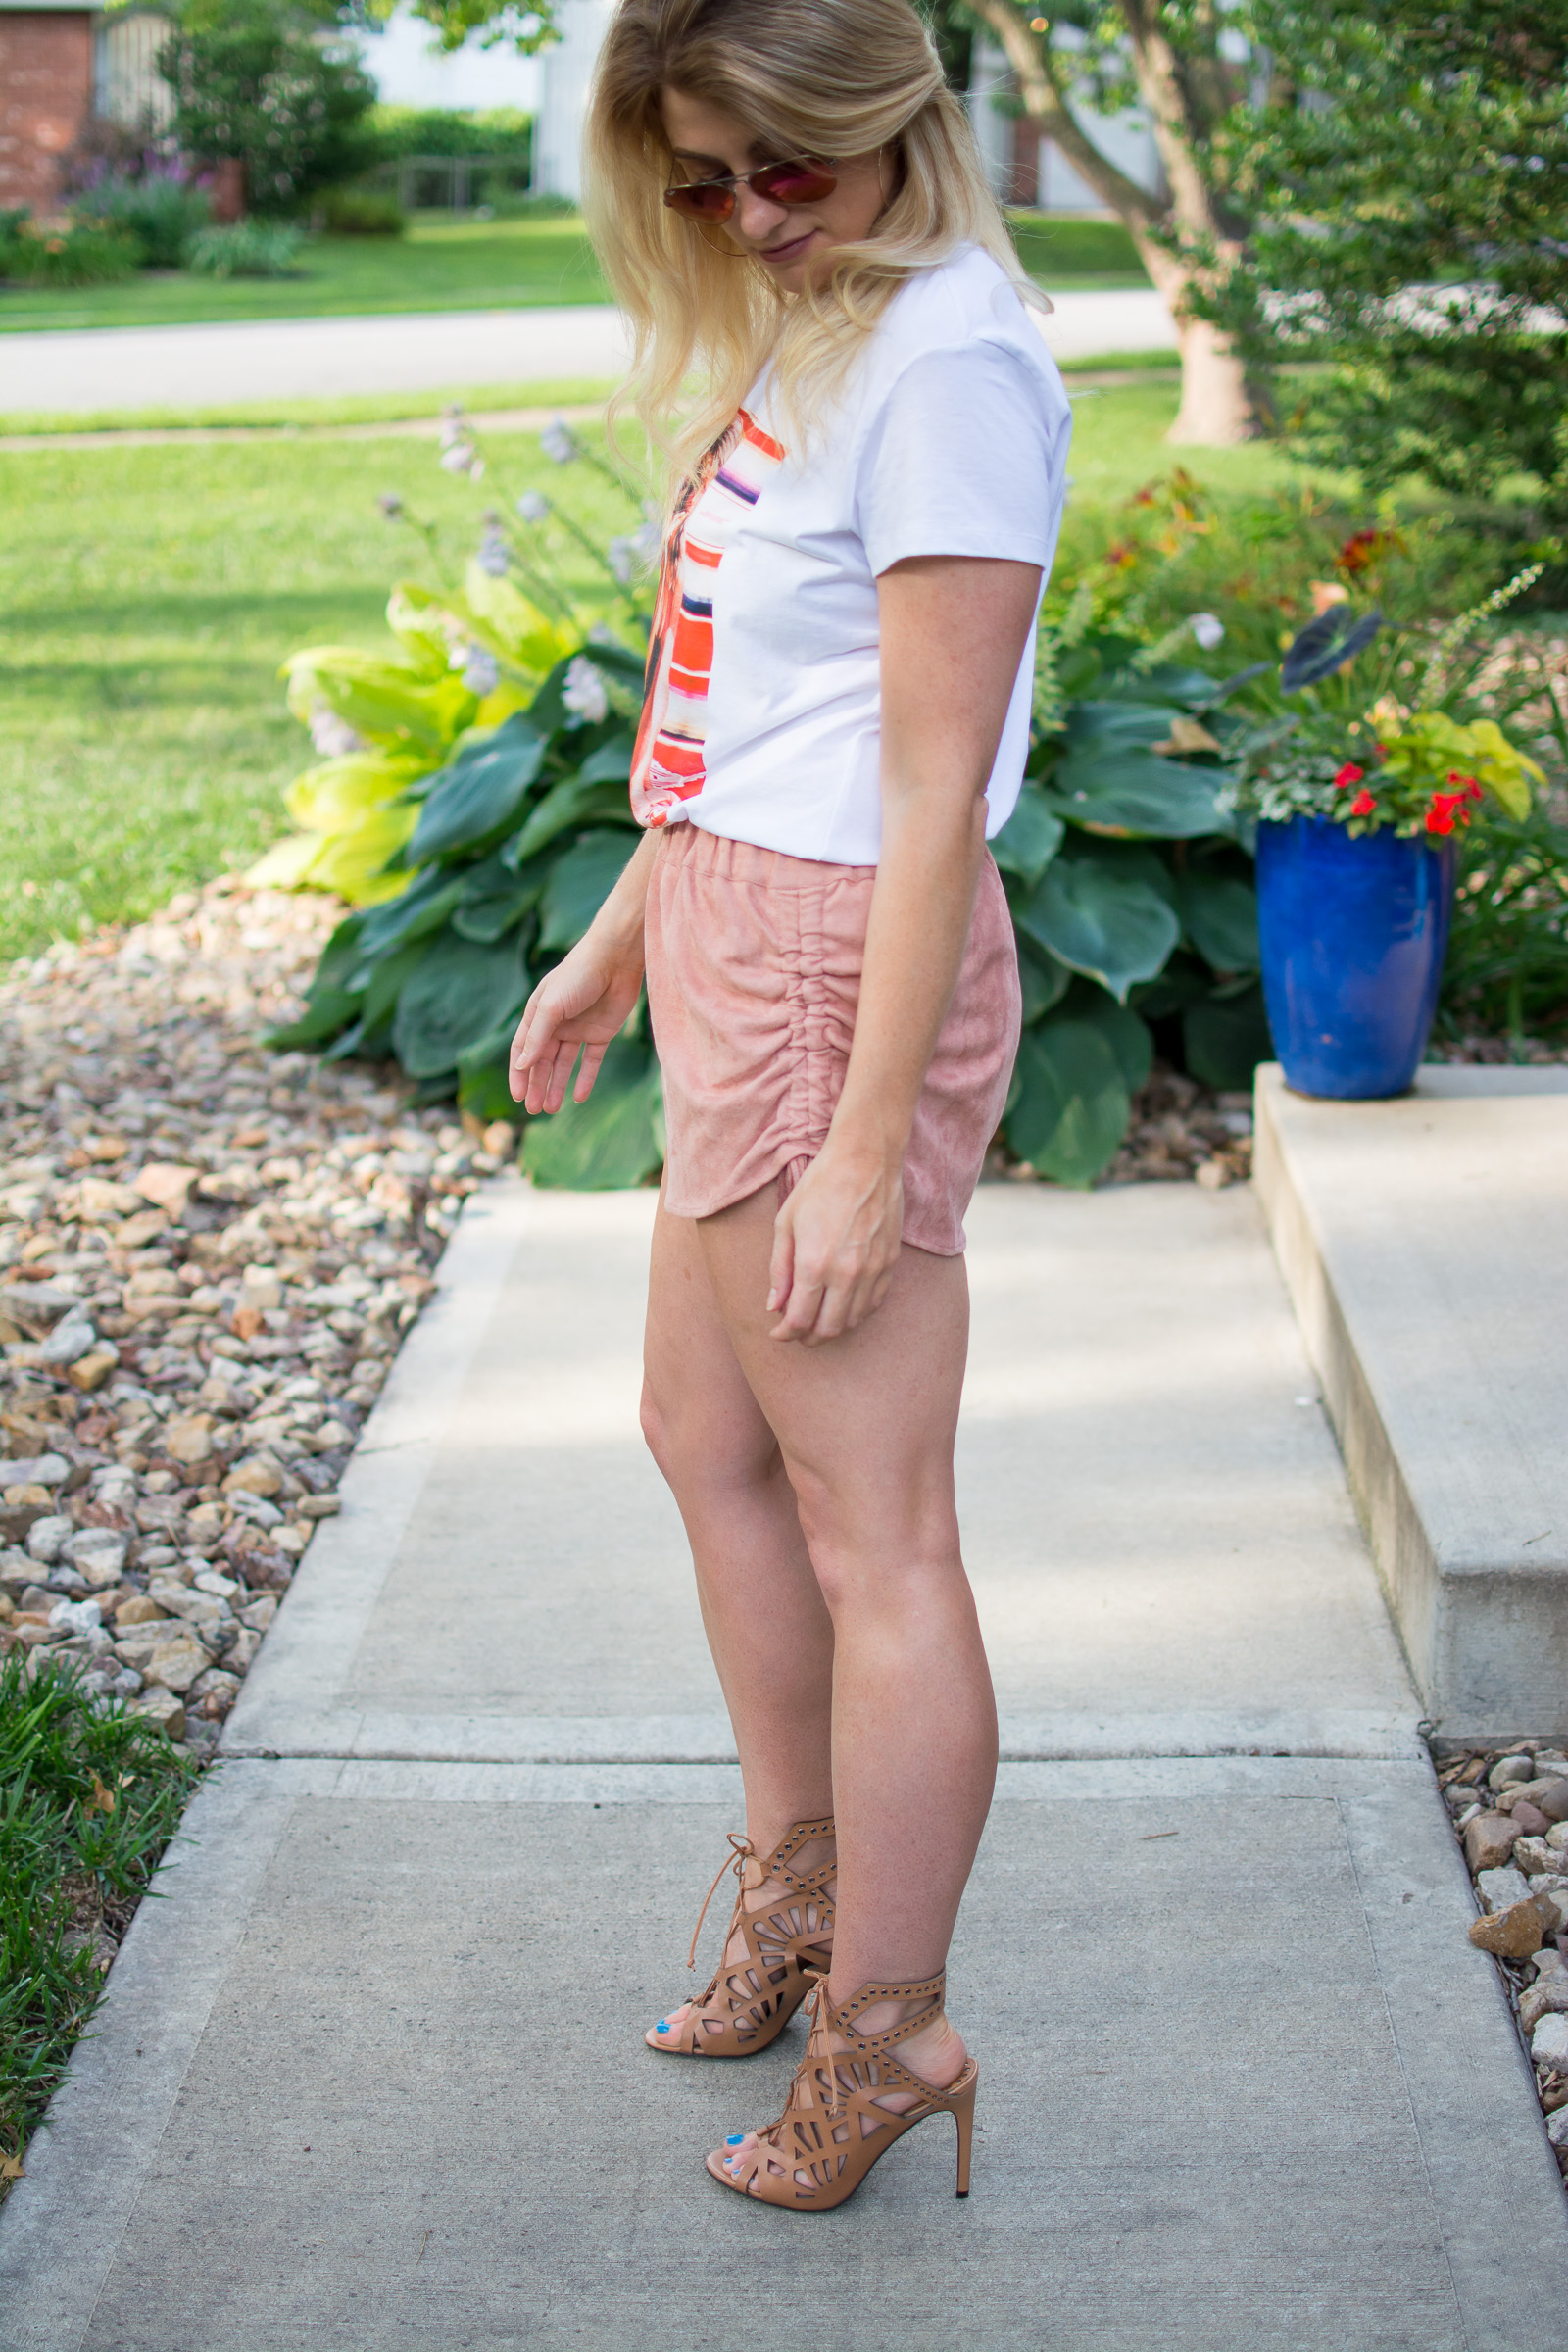 Styling a Graphic Tee with Suede Shorts. | Ashley from Le Stylo Rouge